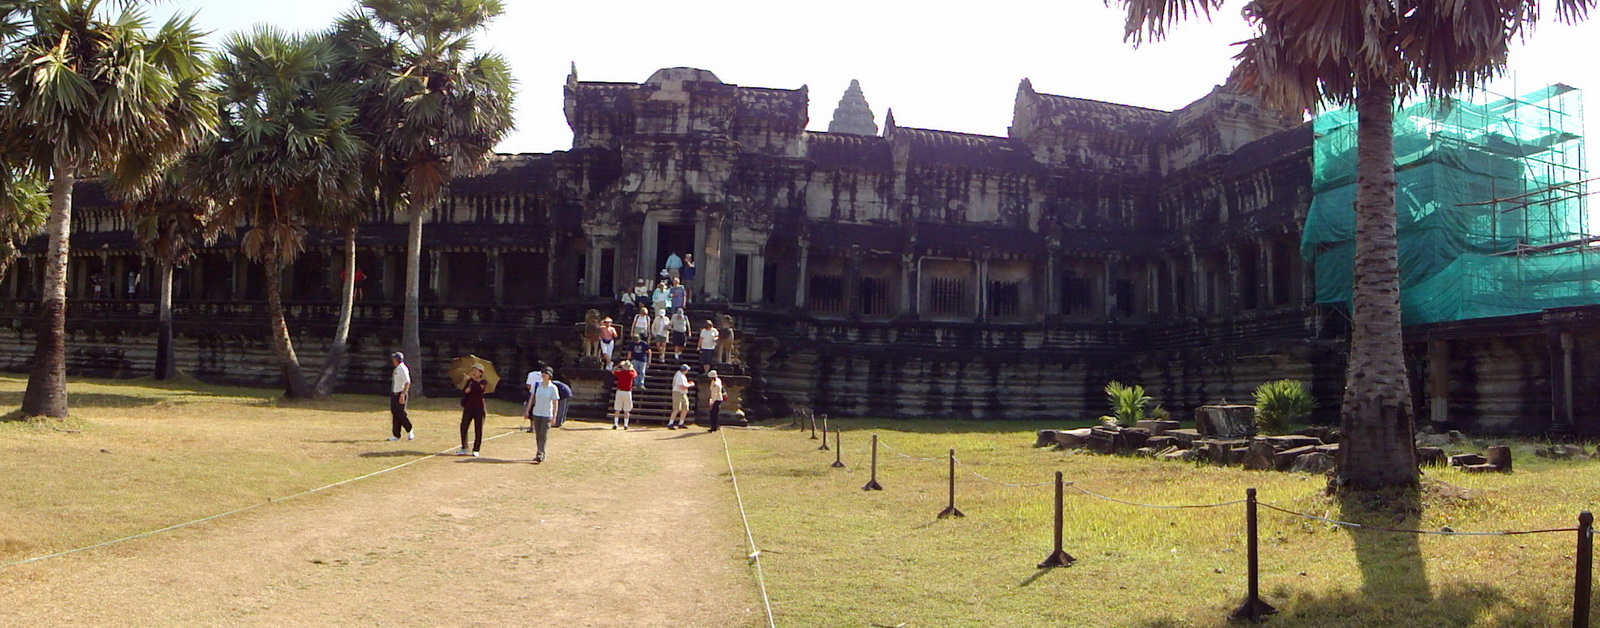 Angkor Wat west gallery entrance 01